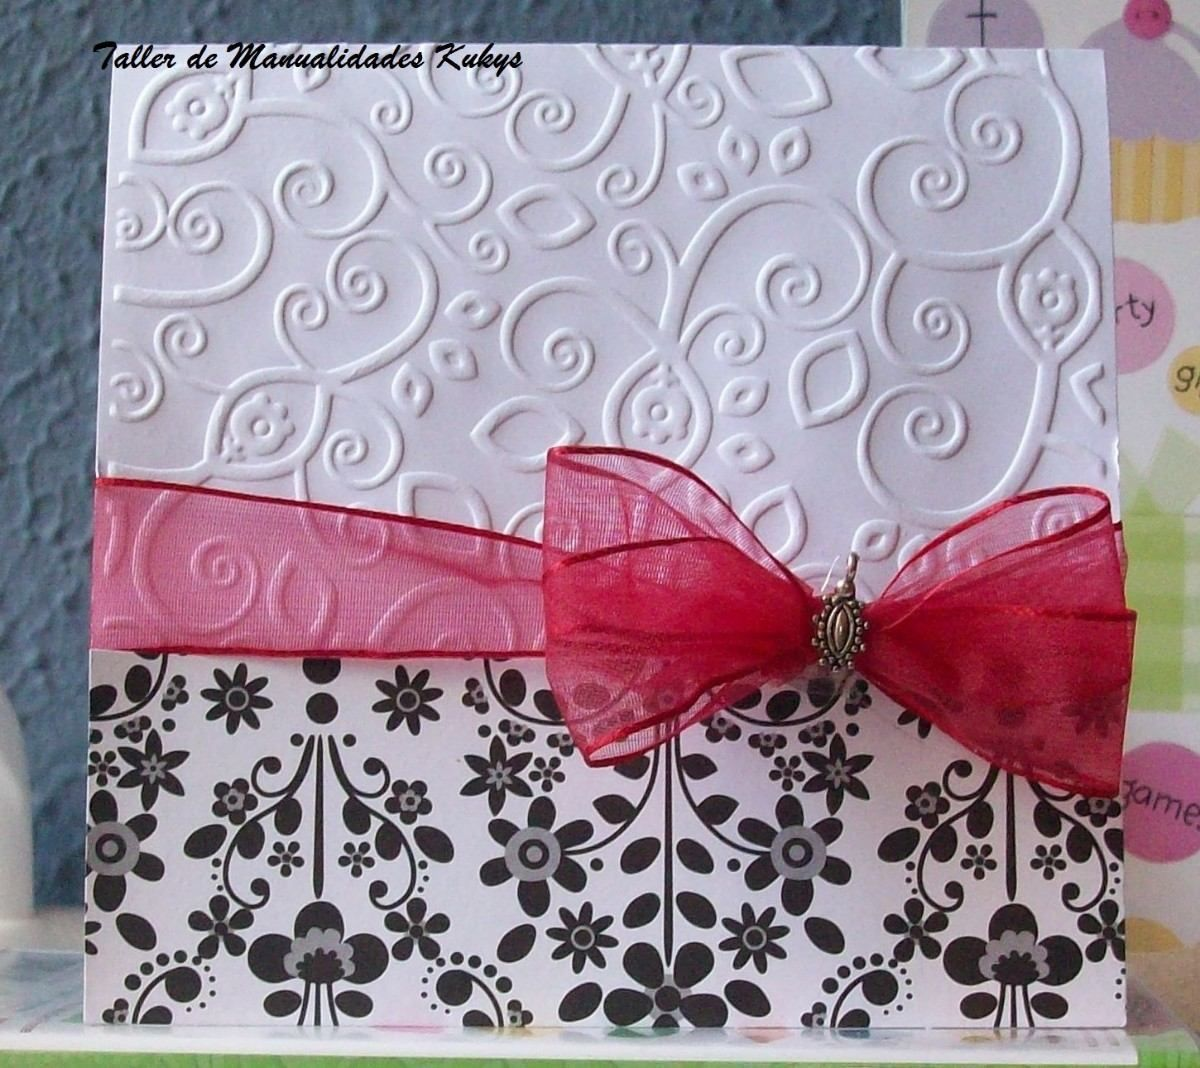 Pin by Leticia Duarte on invitaciones | Pinterest | Cards, Ideas ...